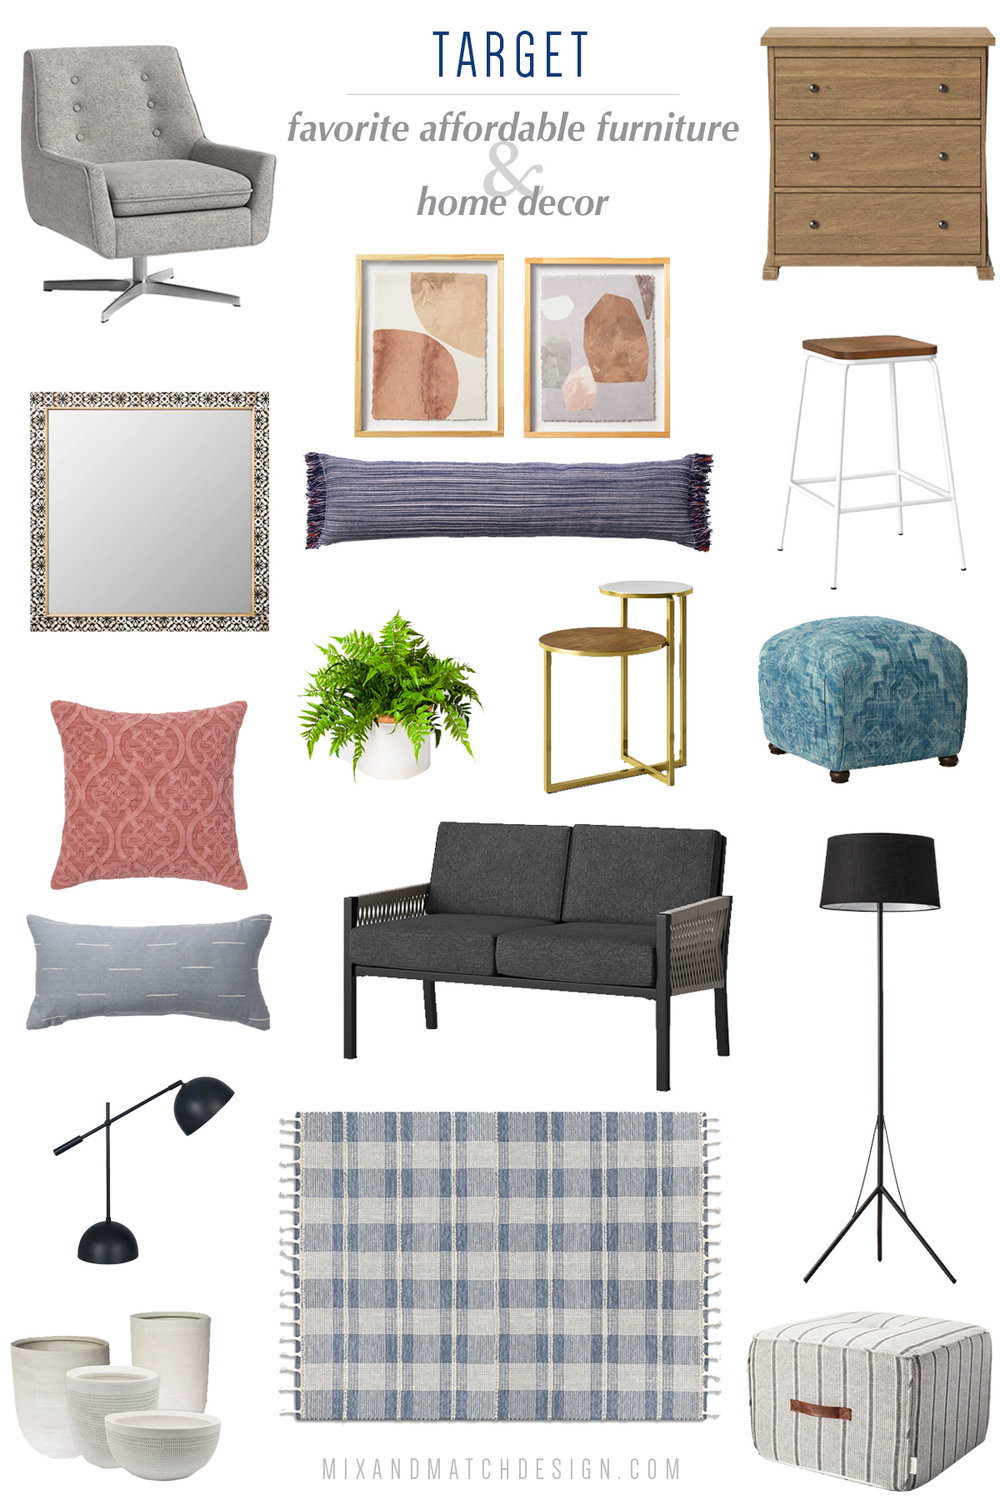 """Looking for affordable furniture and home decor? Target is a great place to shop! Their """"house brands"""" like Project 62, Threshold, Opalhouse, and Hearth & Hand are fabulous resources for modern, farmhouse, and boho decorating styles. Click the image to take a look and get all the sources!"""